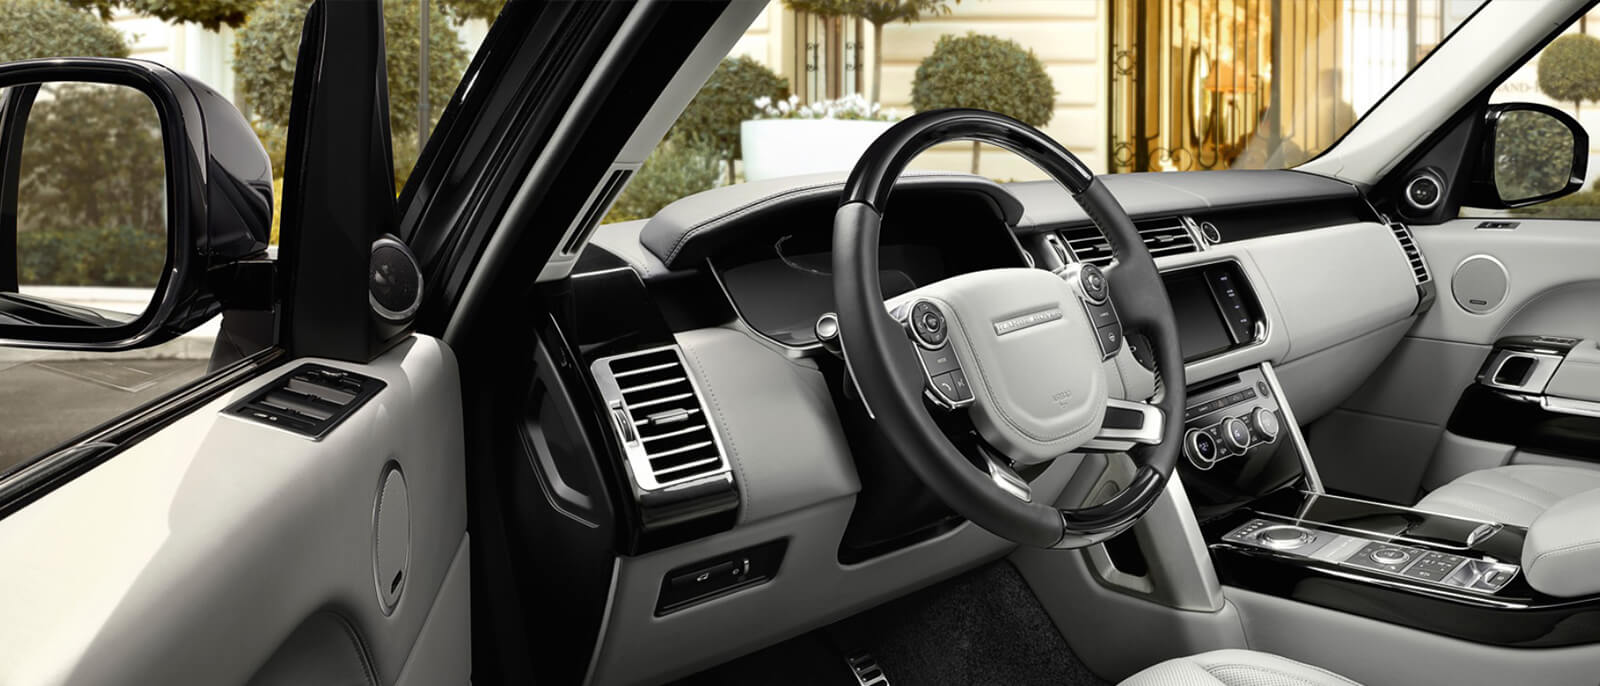 2017 Land Rover Range Rover interior dashboard